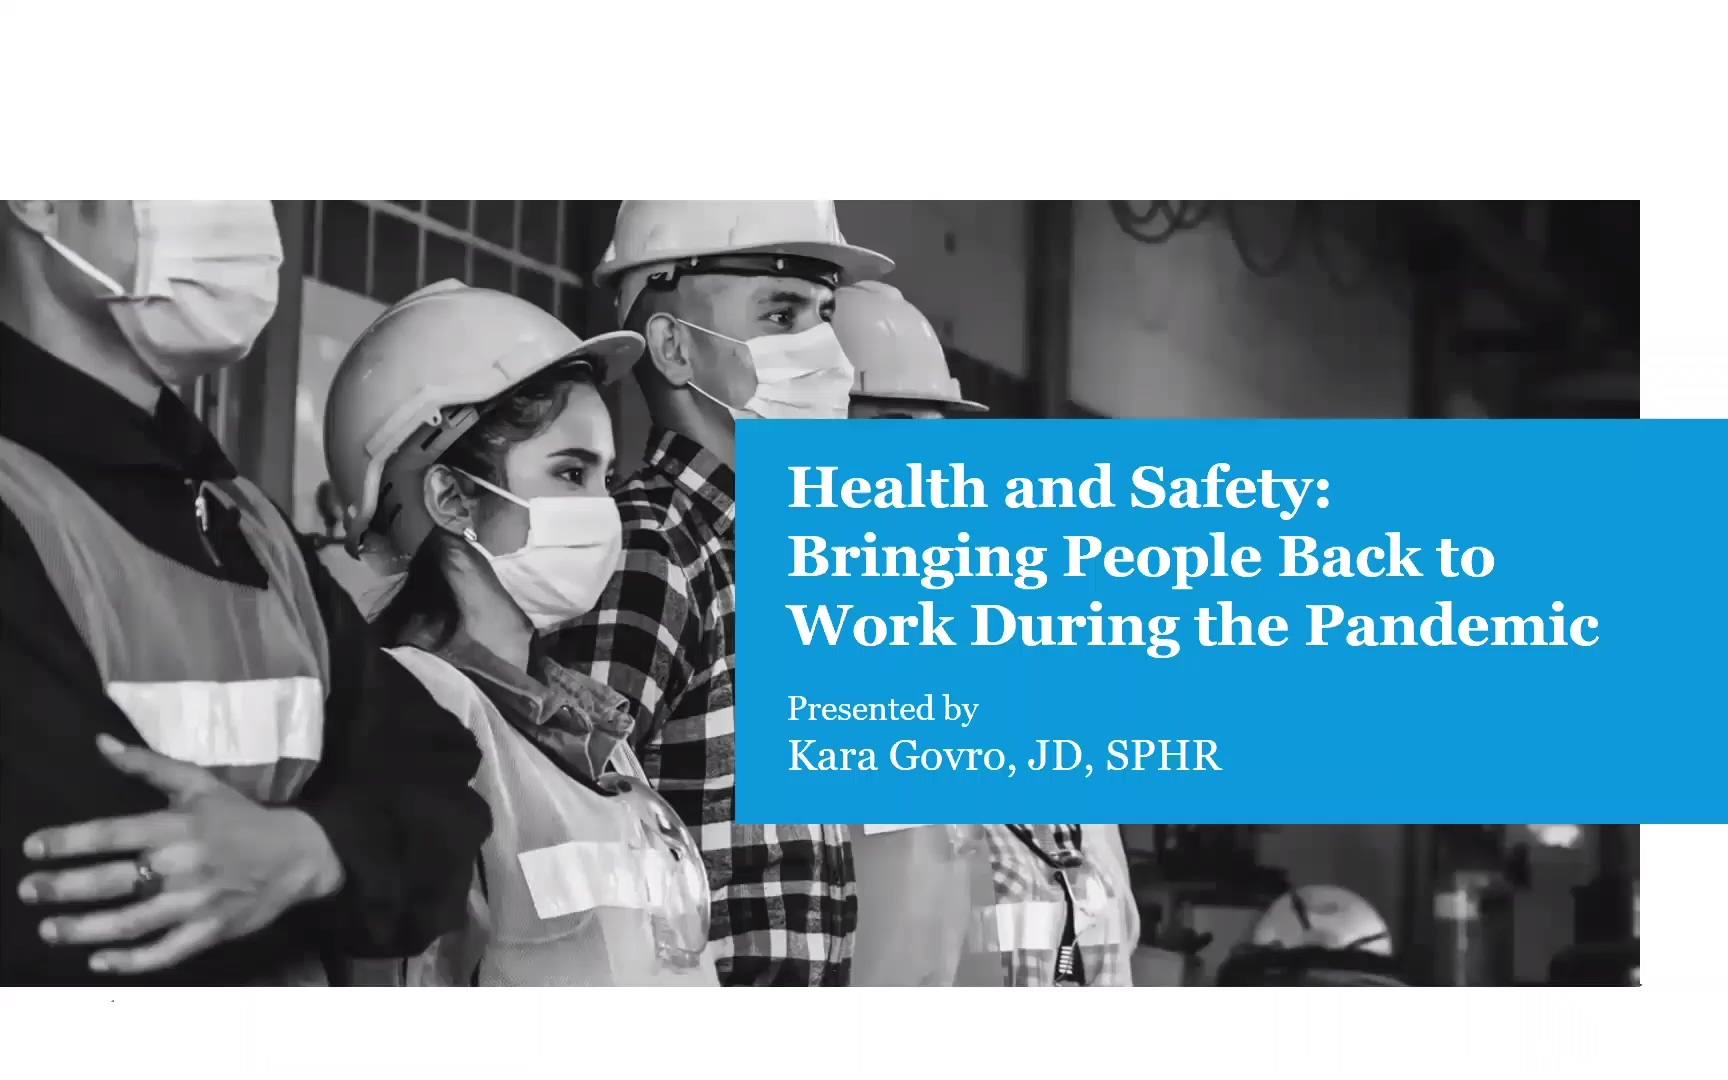 Health and Safety - Bringing People Back to Work During the Pandemic